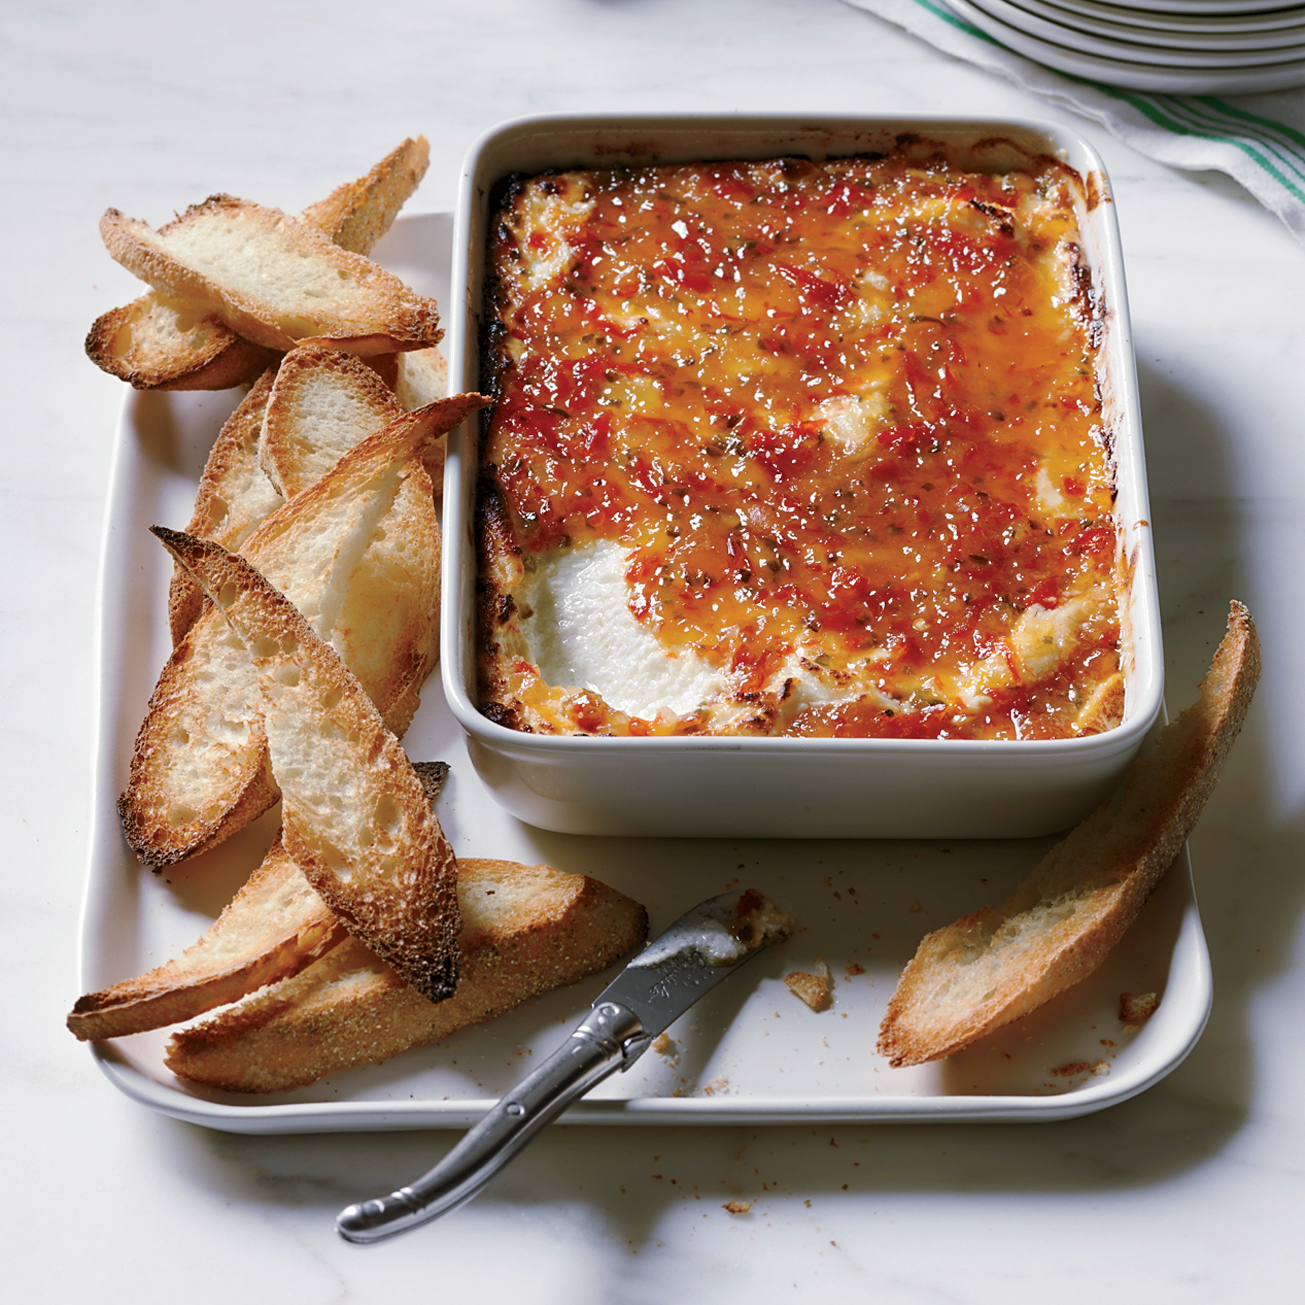 original-201204-r-pepper-glazed-goat-cheese-gratin.jpg